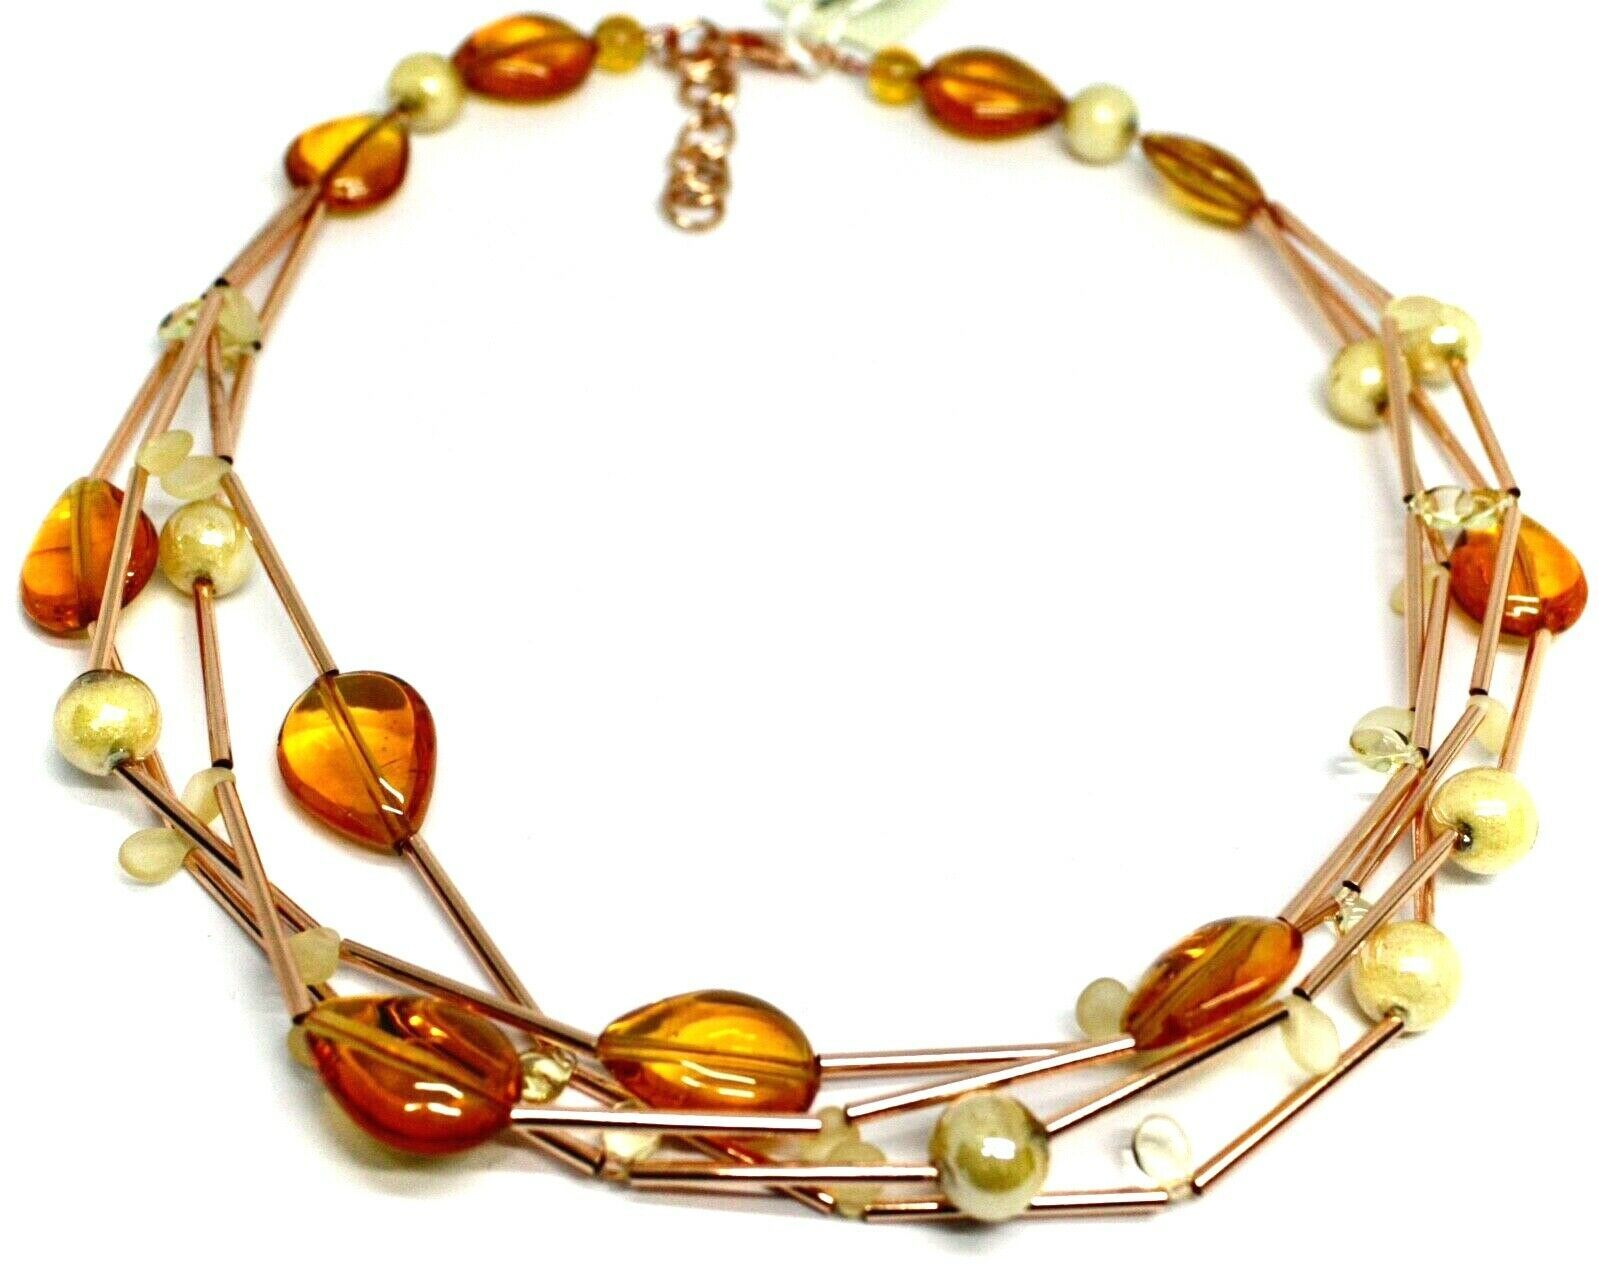 ROSE NECKLACE MULTI WIRES TUBE ORANGE DROP SPHERE PETALS MURANO GLASS ITALY MADE